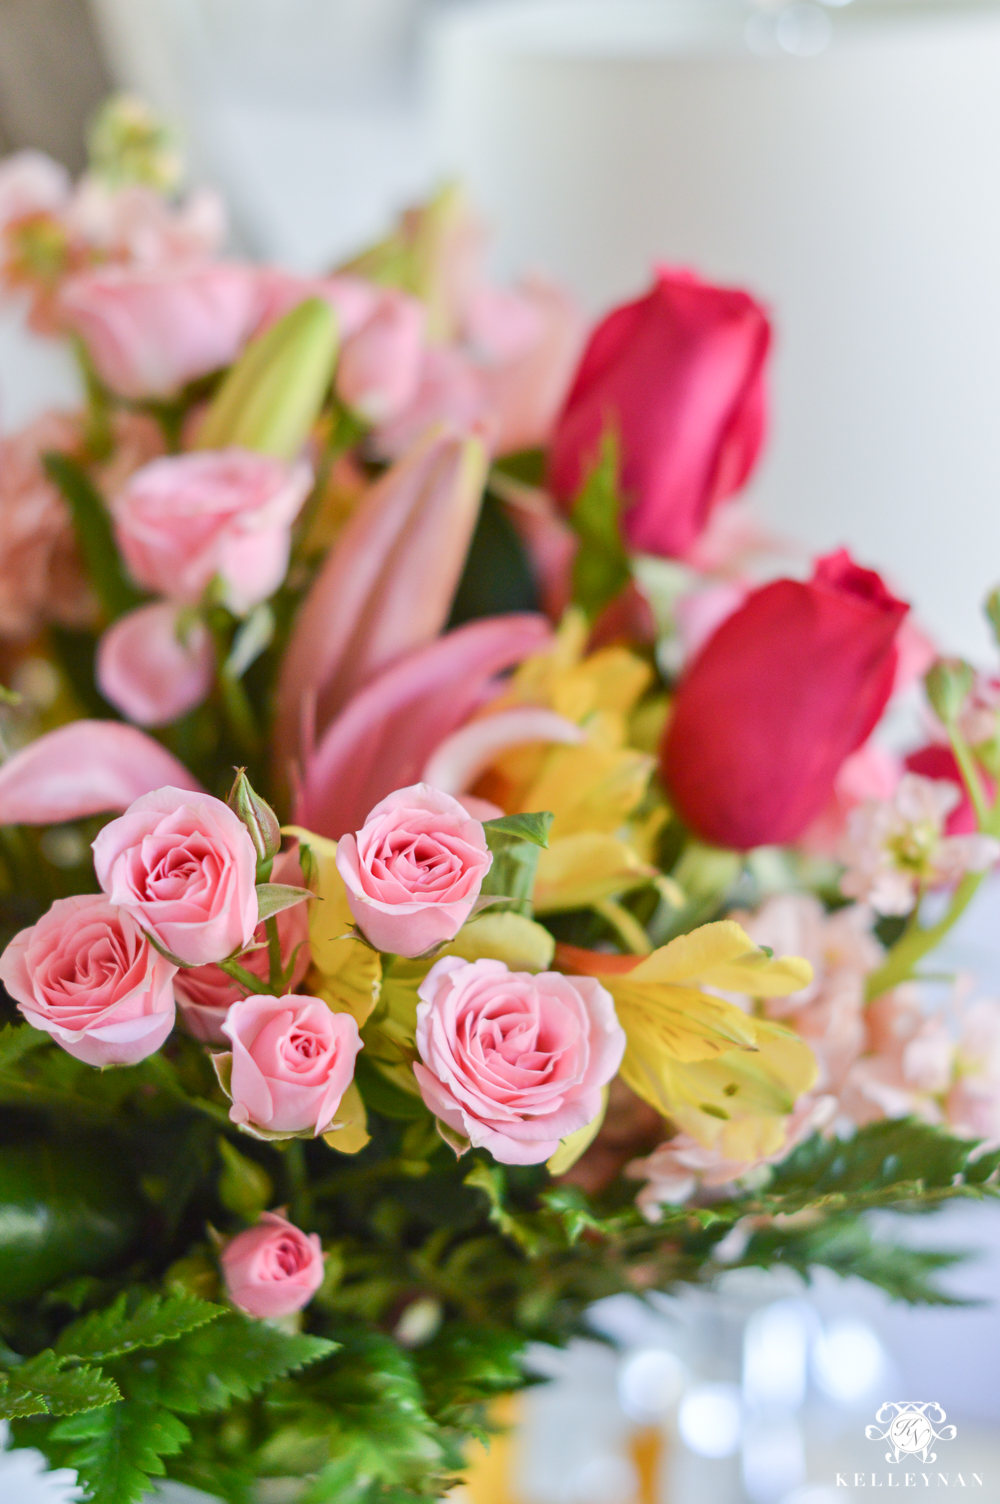 Roses and lilies from FTD